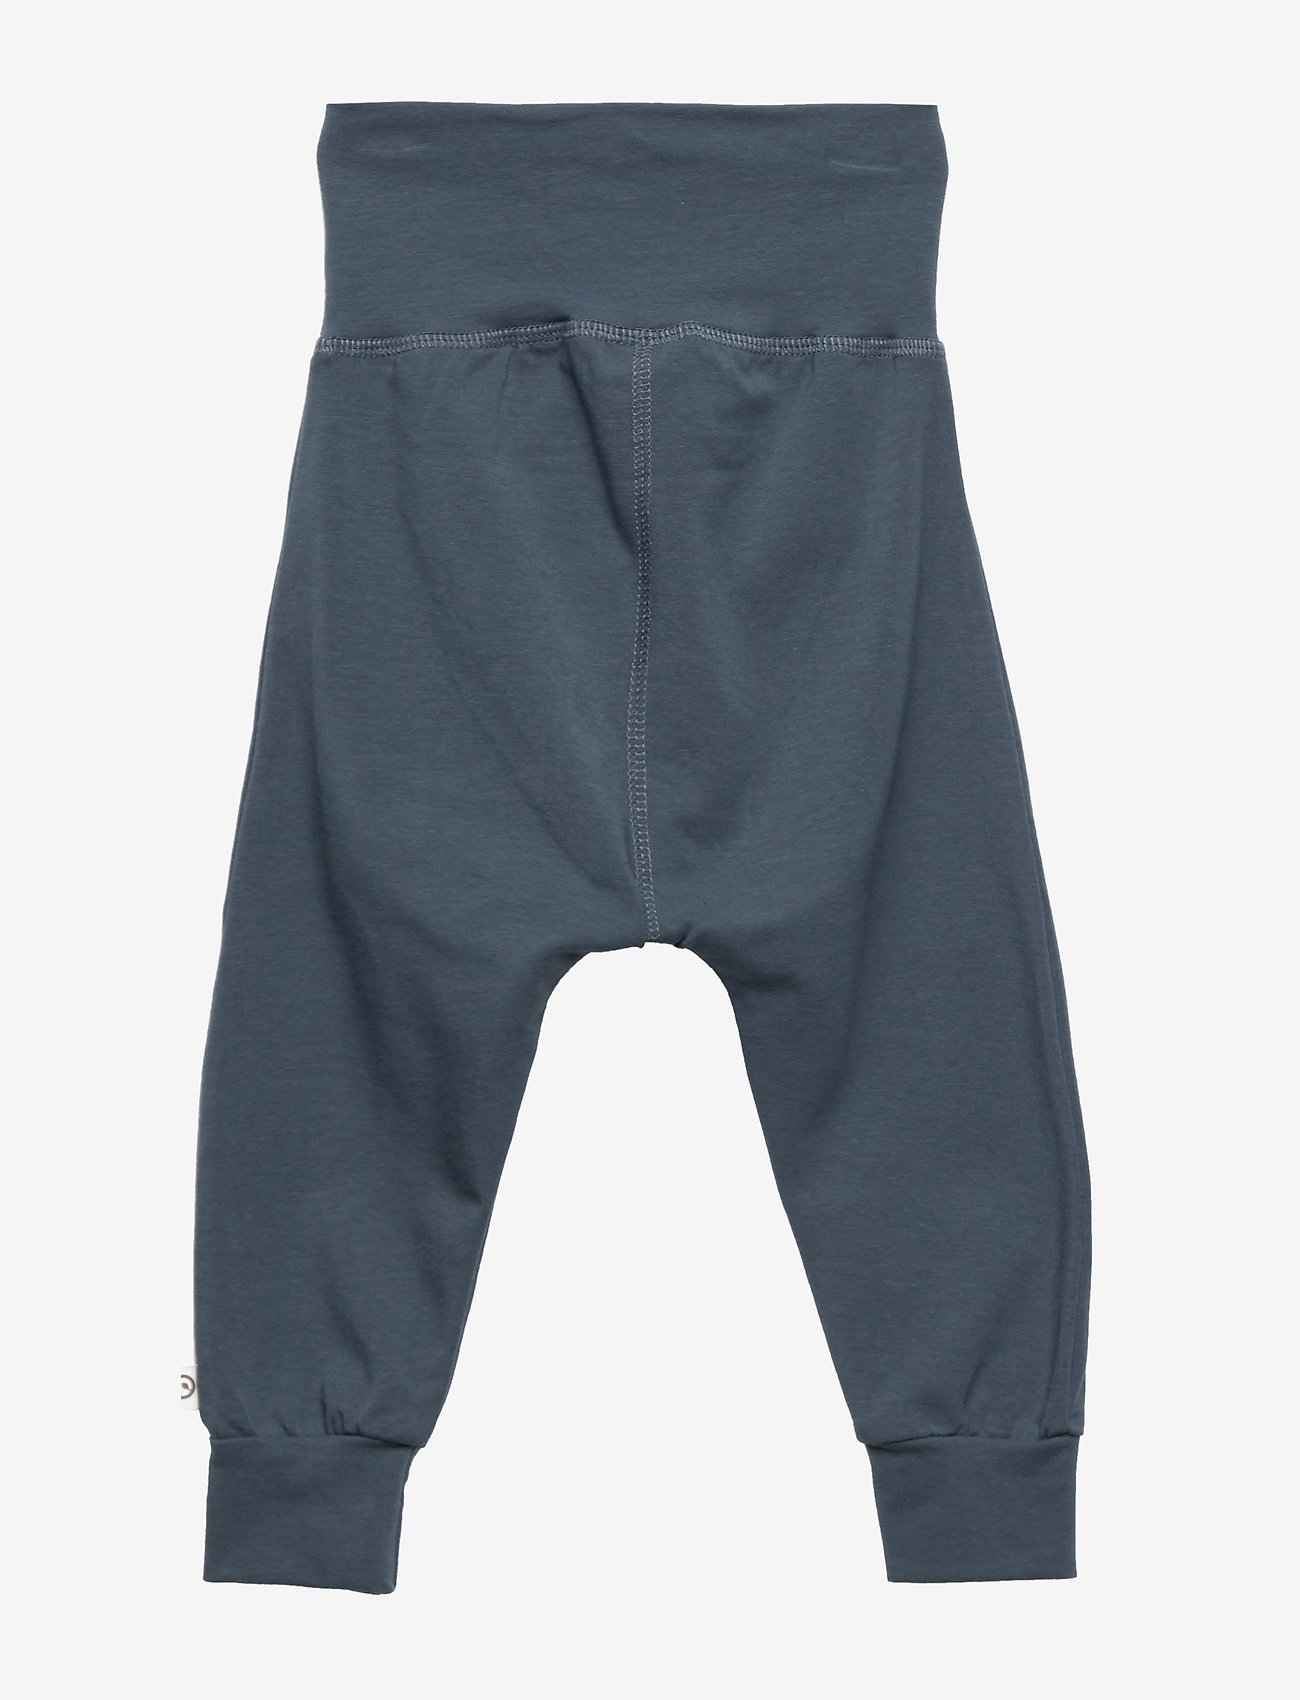 Müsli by Green Cotton - Cozy me pocket pants - trousers - midnight - 1